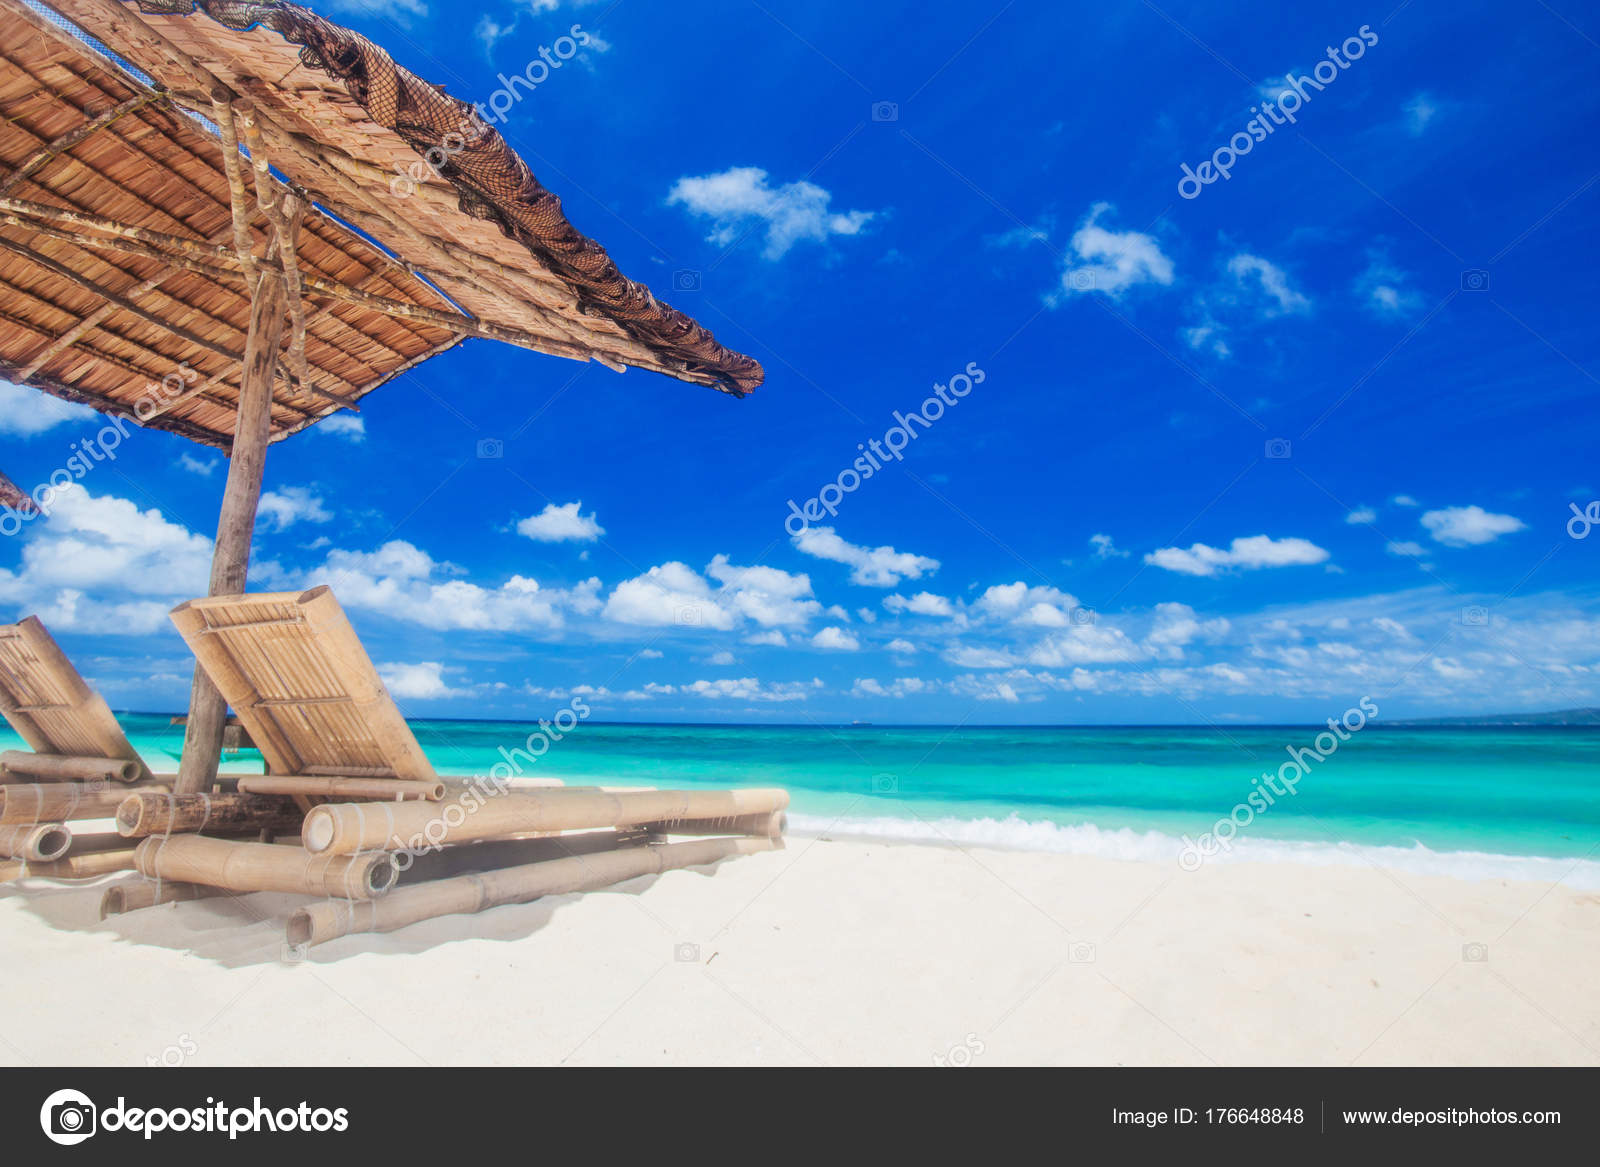 Lounge chairs under tent on beach u2014 Stock Photo  sc 1 st  Depositphotos & Lounge chairs under tent on beach u2014 Stock Photo © yellow2j #176648848